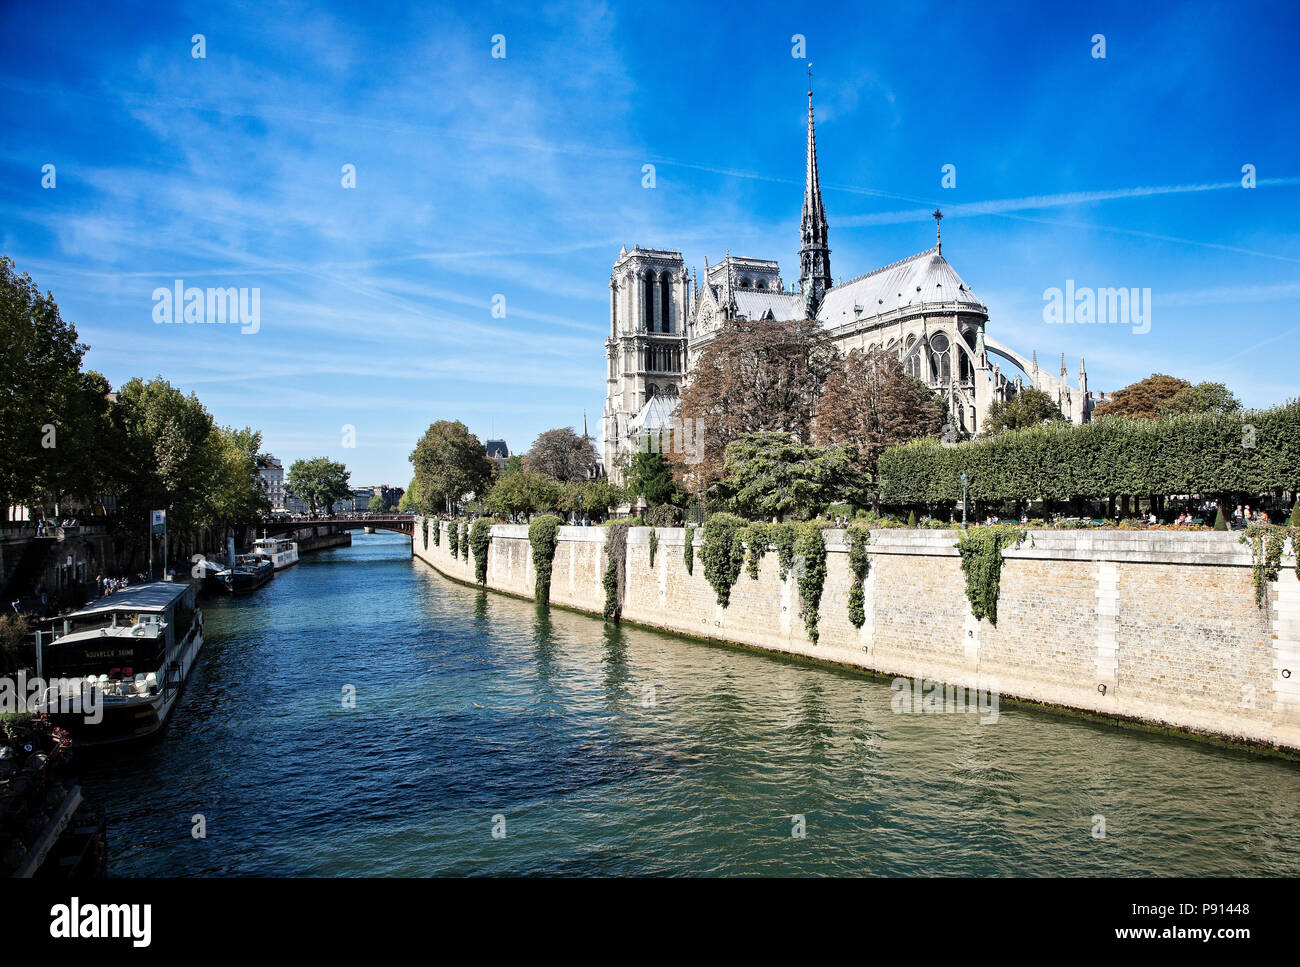 Notre Dame sits above the River Seine in central Paris, France. - Stock Image